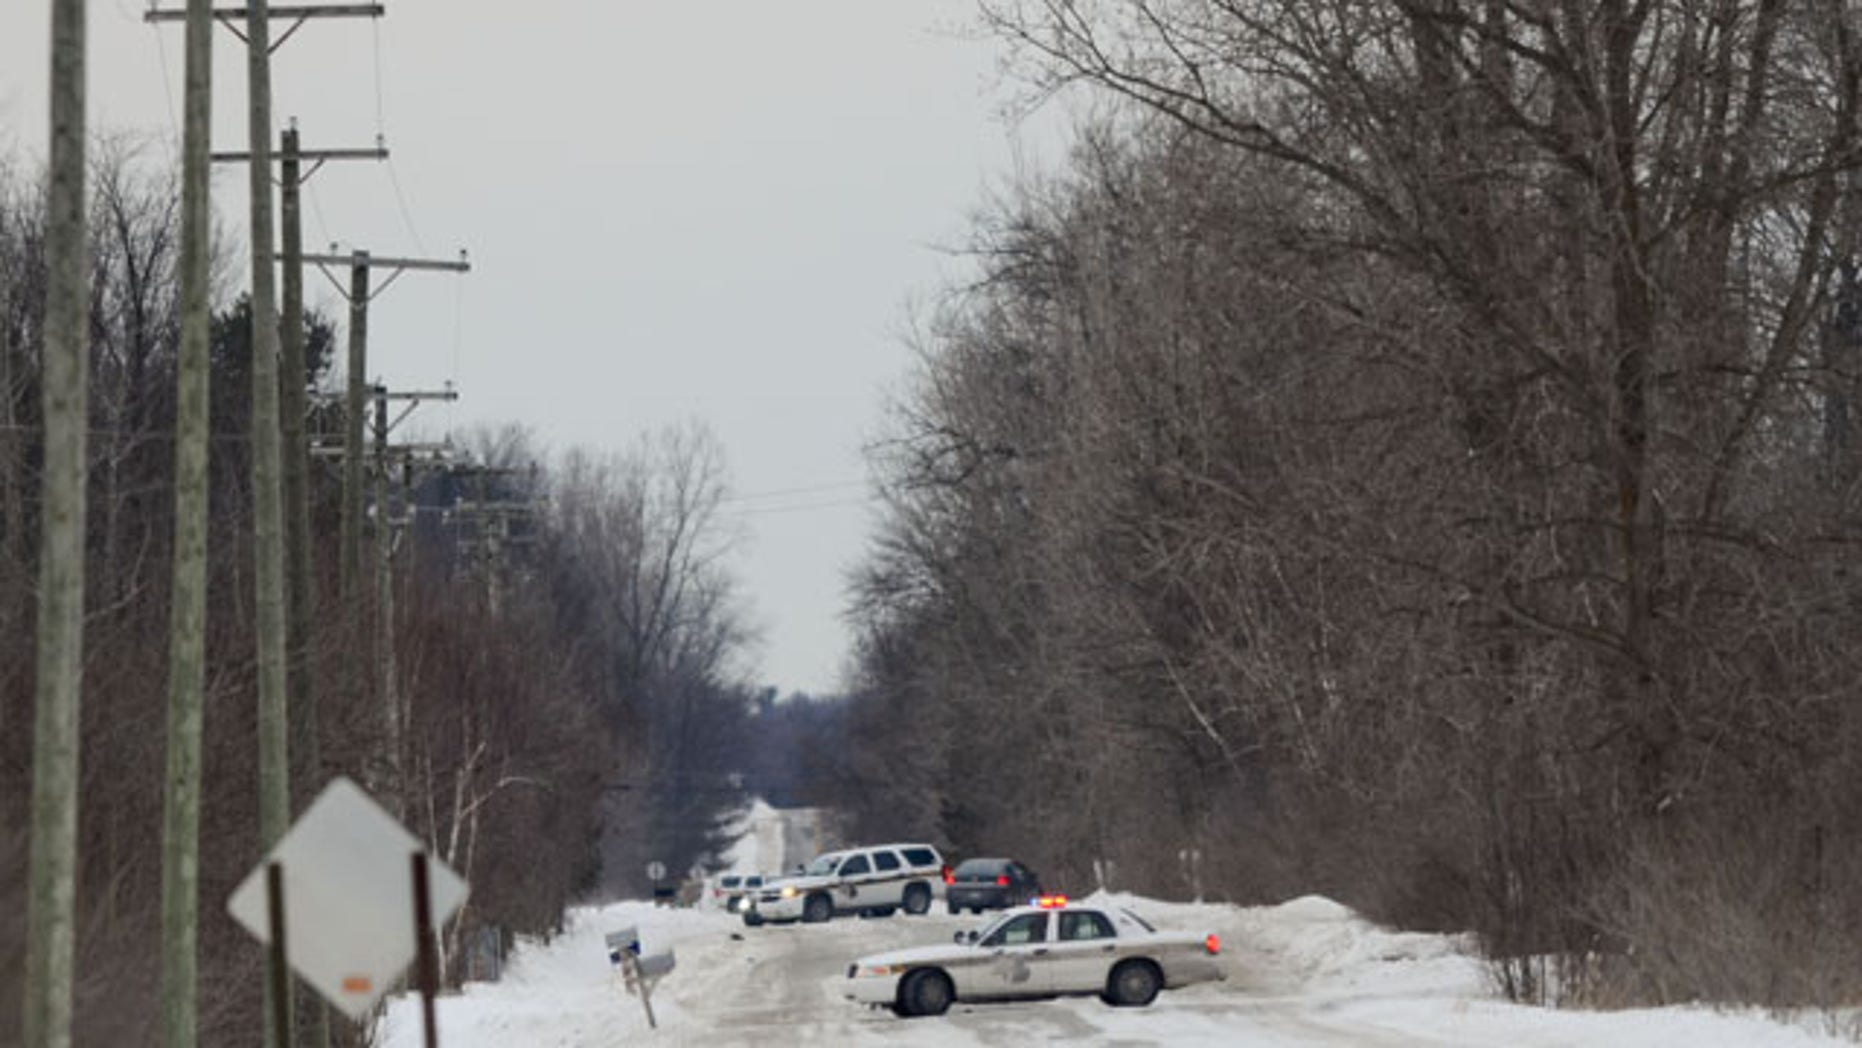 January 30, 2014: Officers from the St. Clair County Sheriff's Department investigate a scene where bags of human remains were discovered at the intersection Allington and Fred Moore Highway in St. Clair Township, Mich. (AP PHOTO/TIMES HERALD, JEFFREY SMITH)